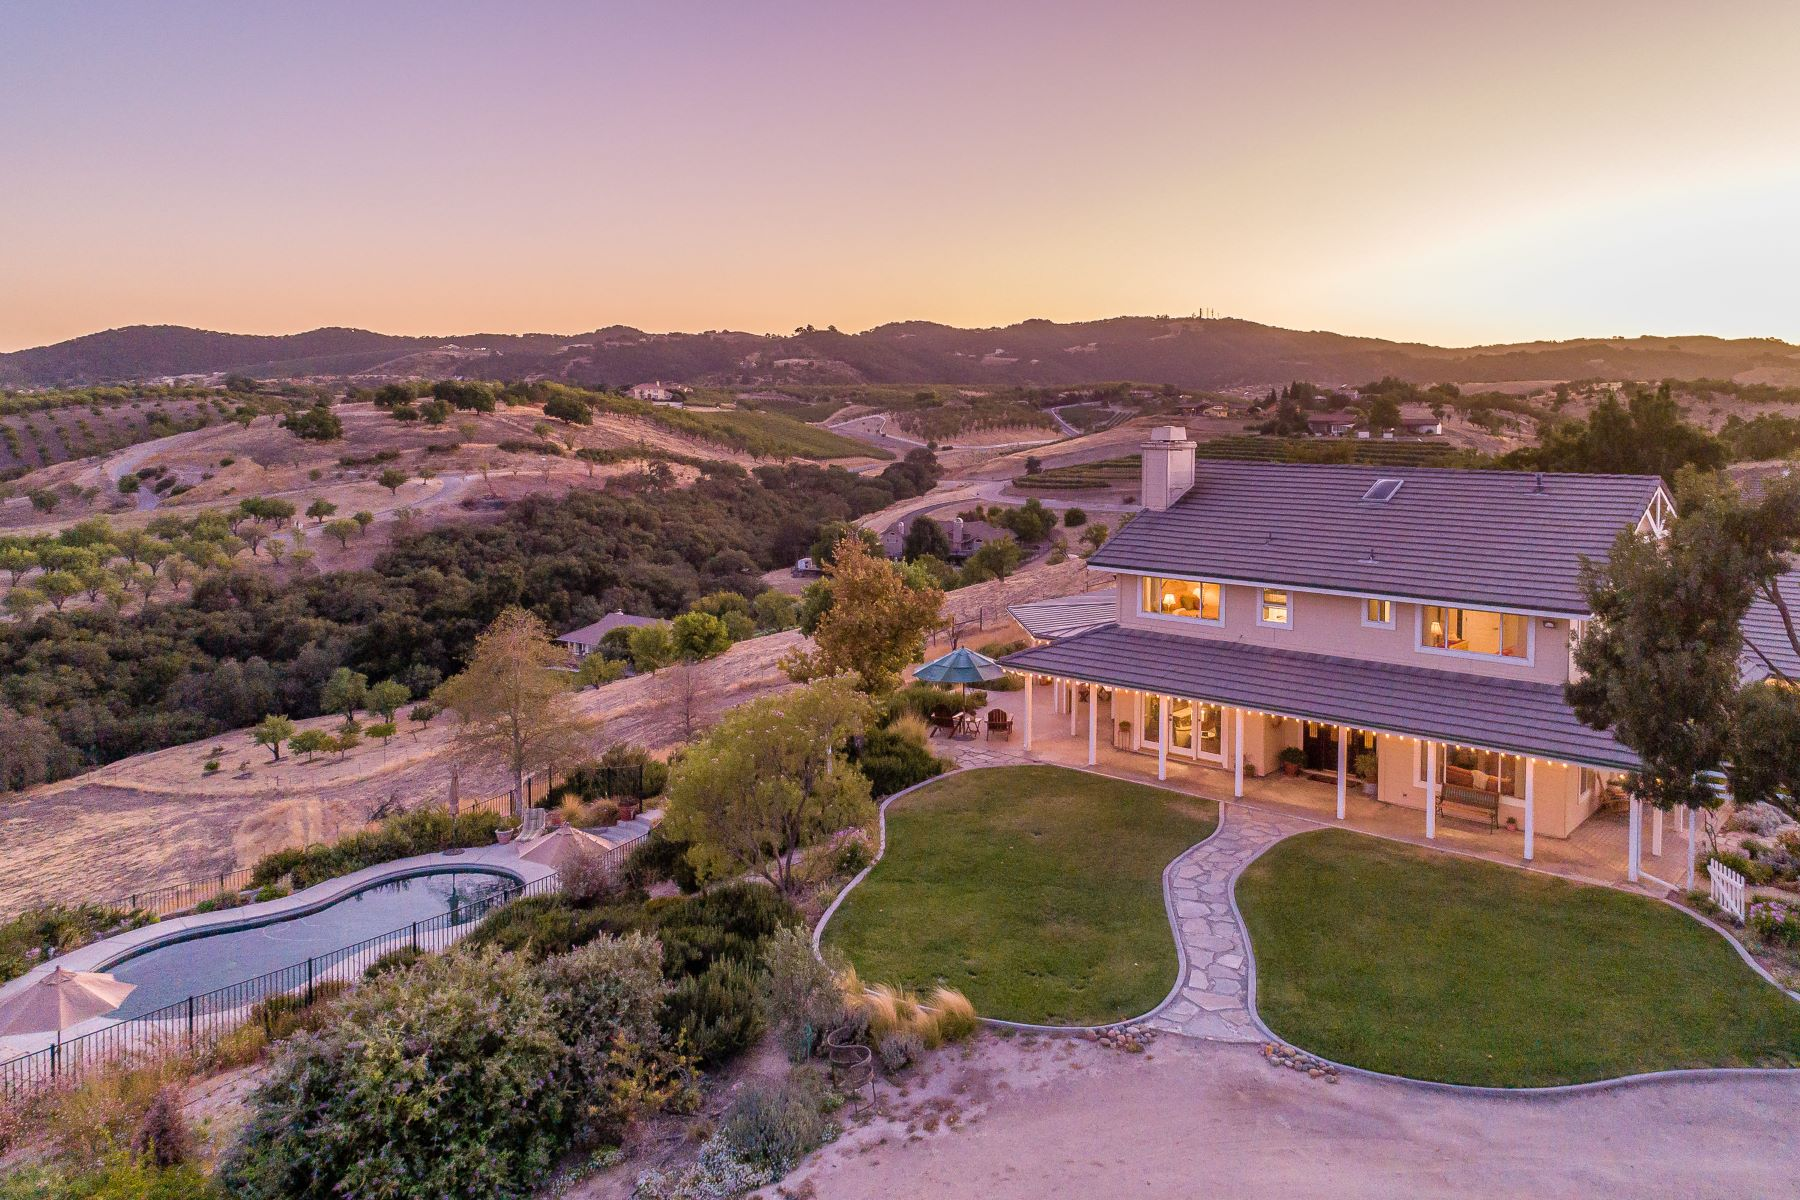 Single Family Homes for Sale at Serene Rolling Hills & Vineyard Views from Every Window 3700 Mira Vista Way Paso Robles, California 93446 United States